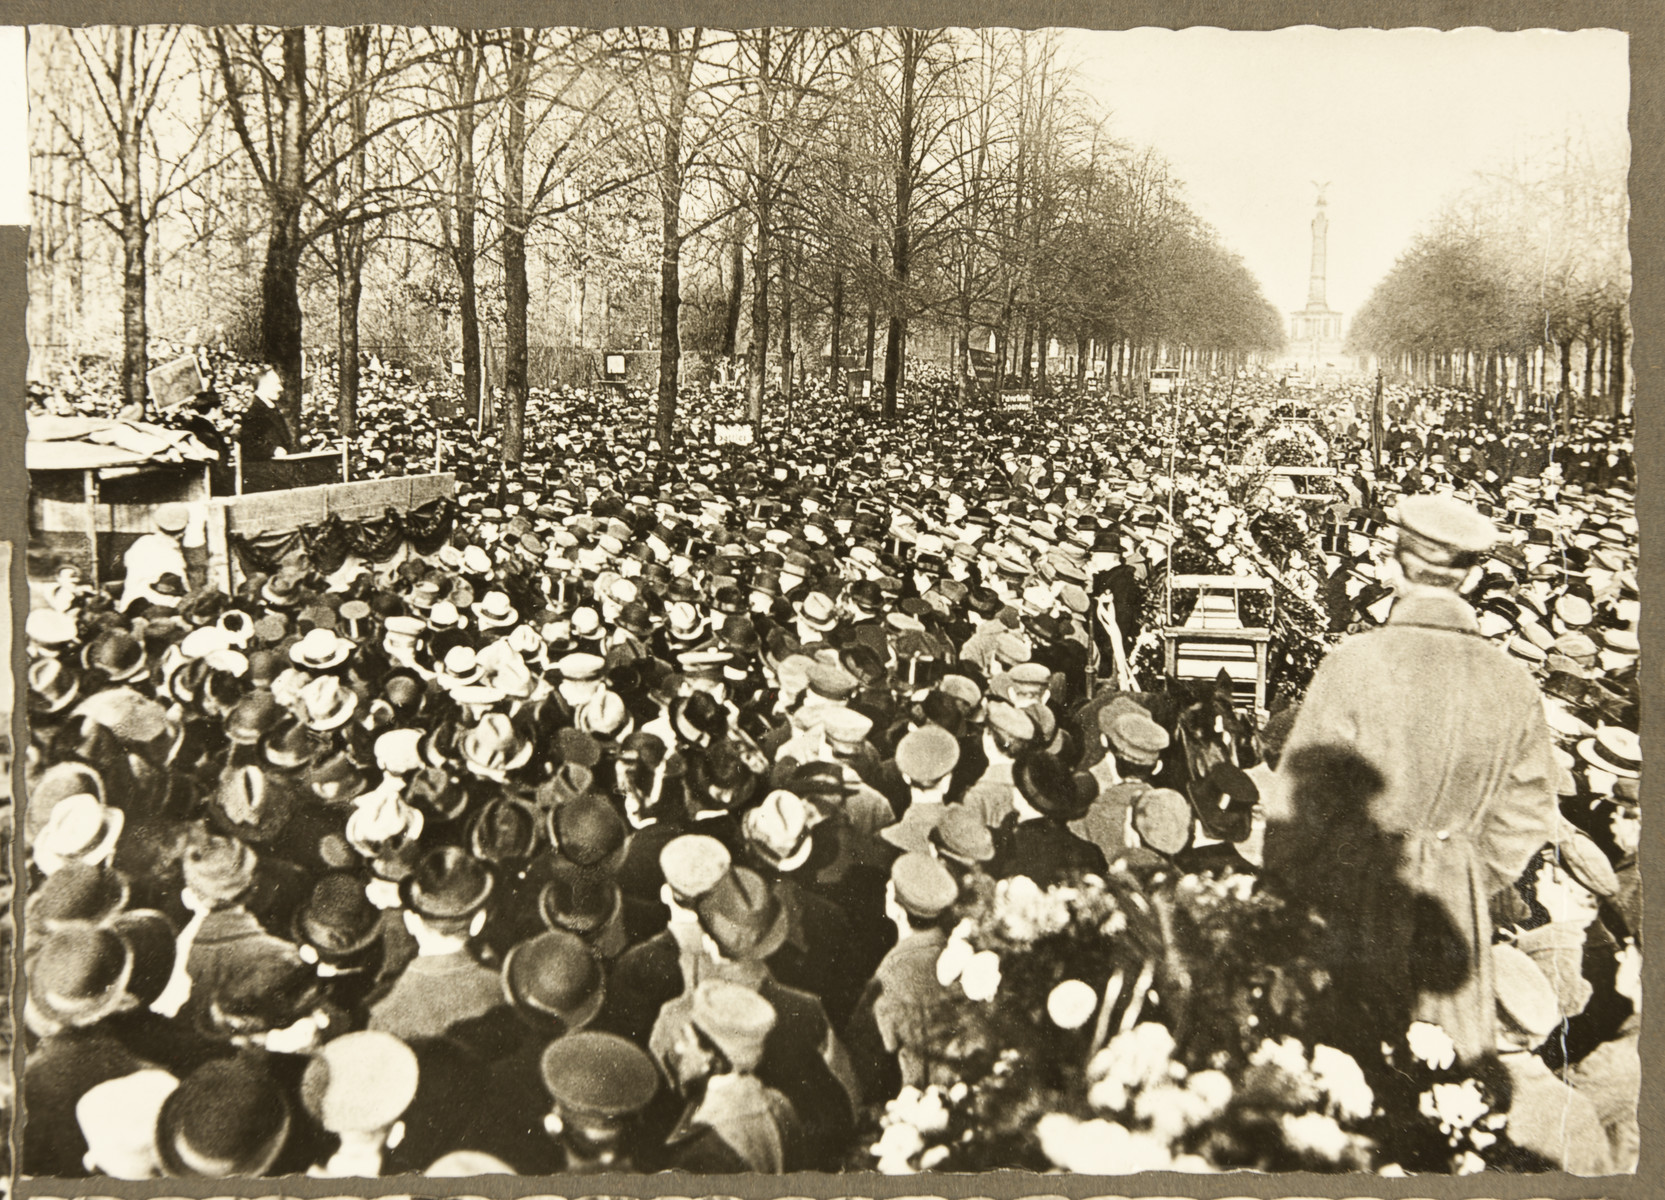 An assembly in the Siegesallee during the funerals of demonstrators who were shot by counterrevolutionary troops that fired in to a crowd on December 6, 1918 and killed 16 in a failed coup attempt.